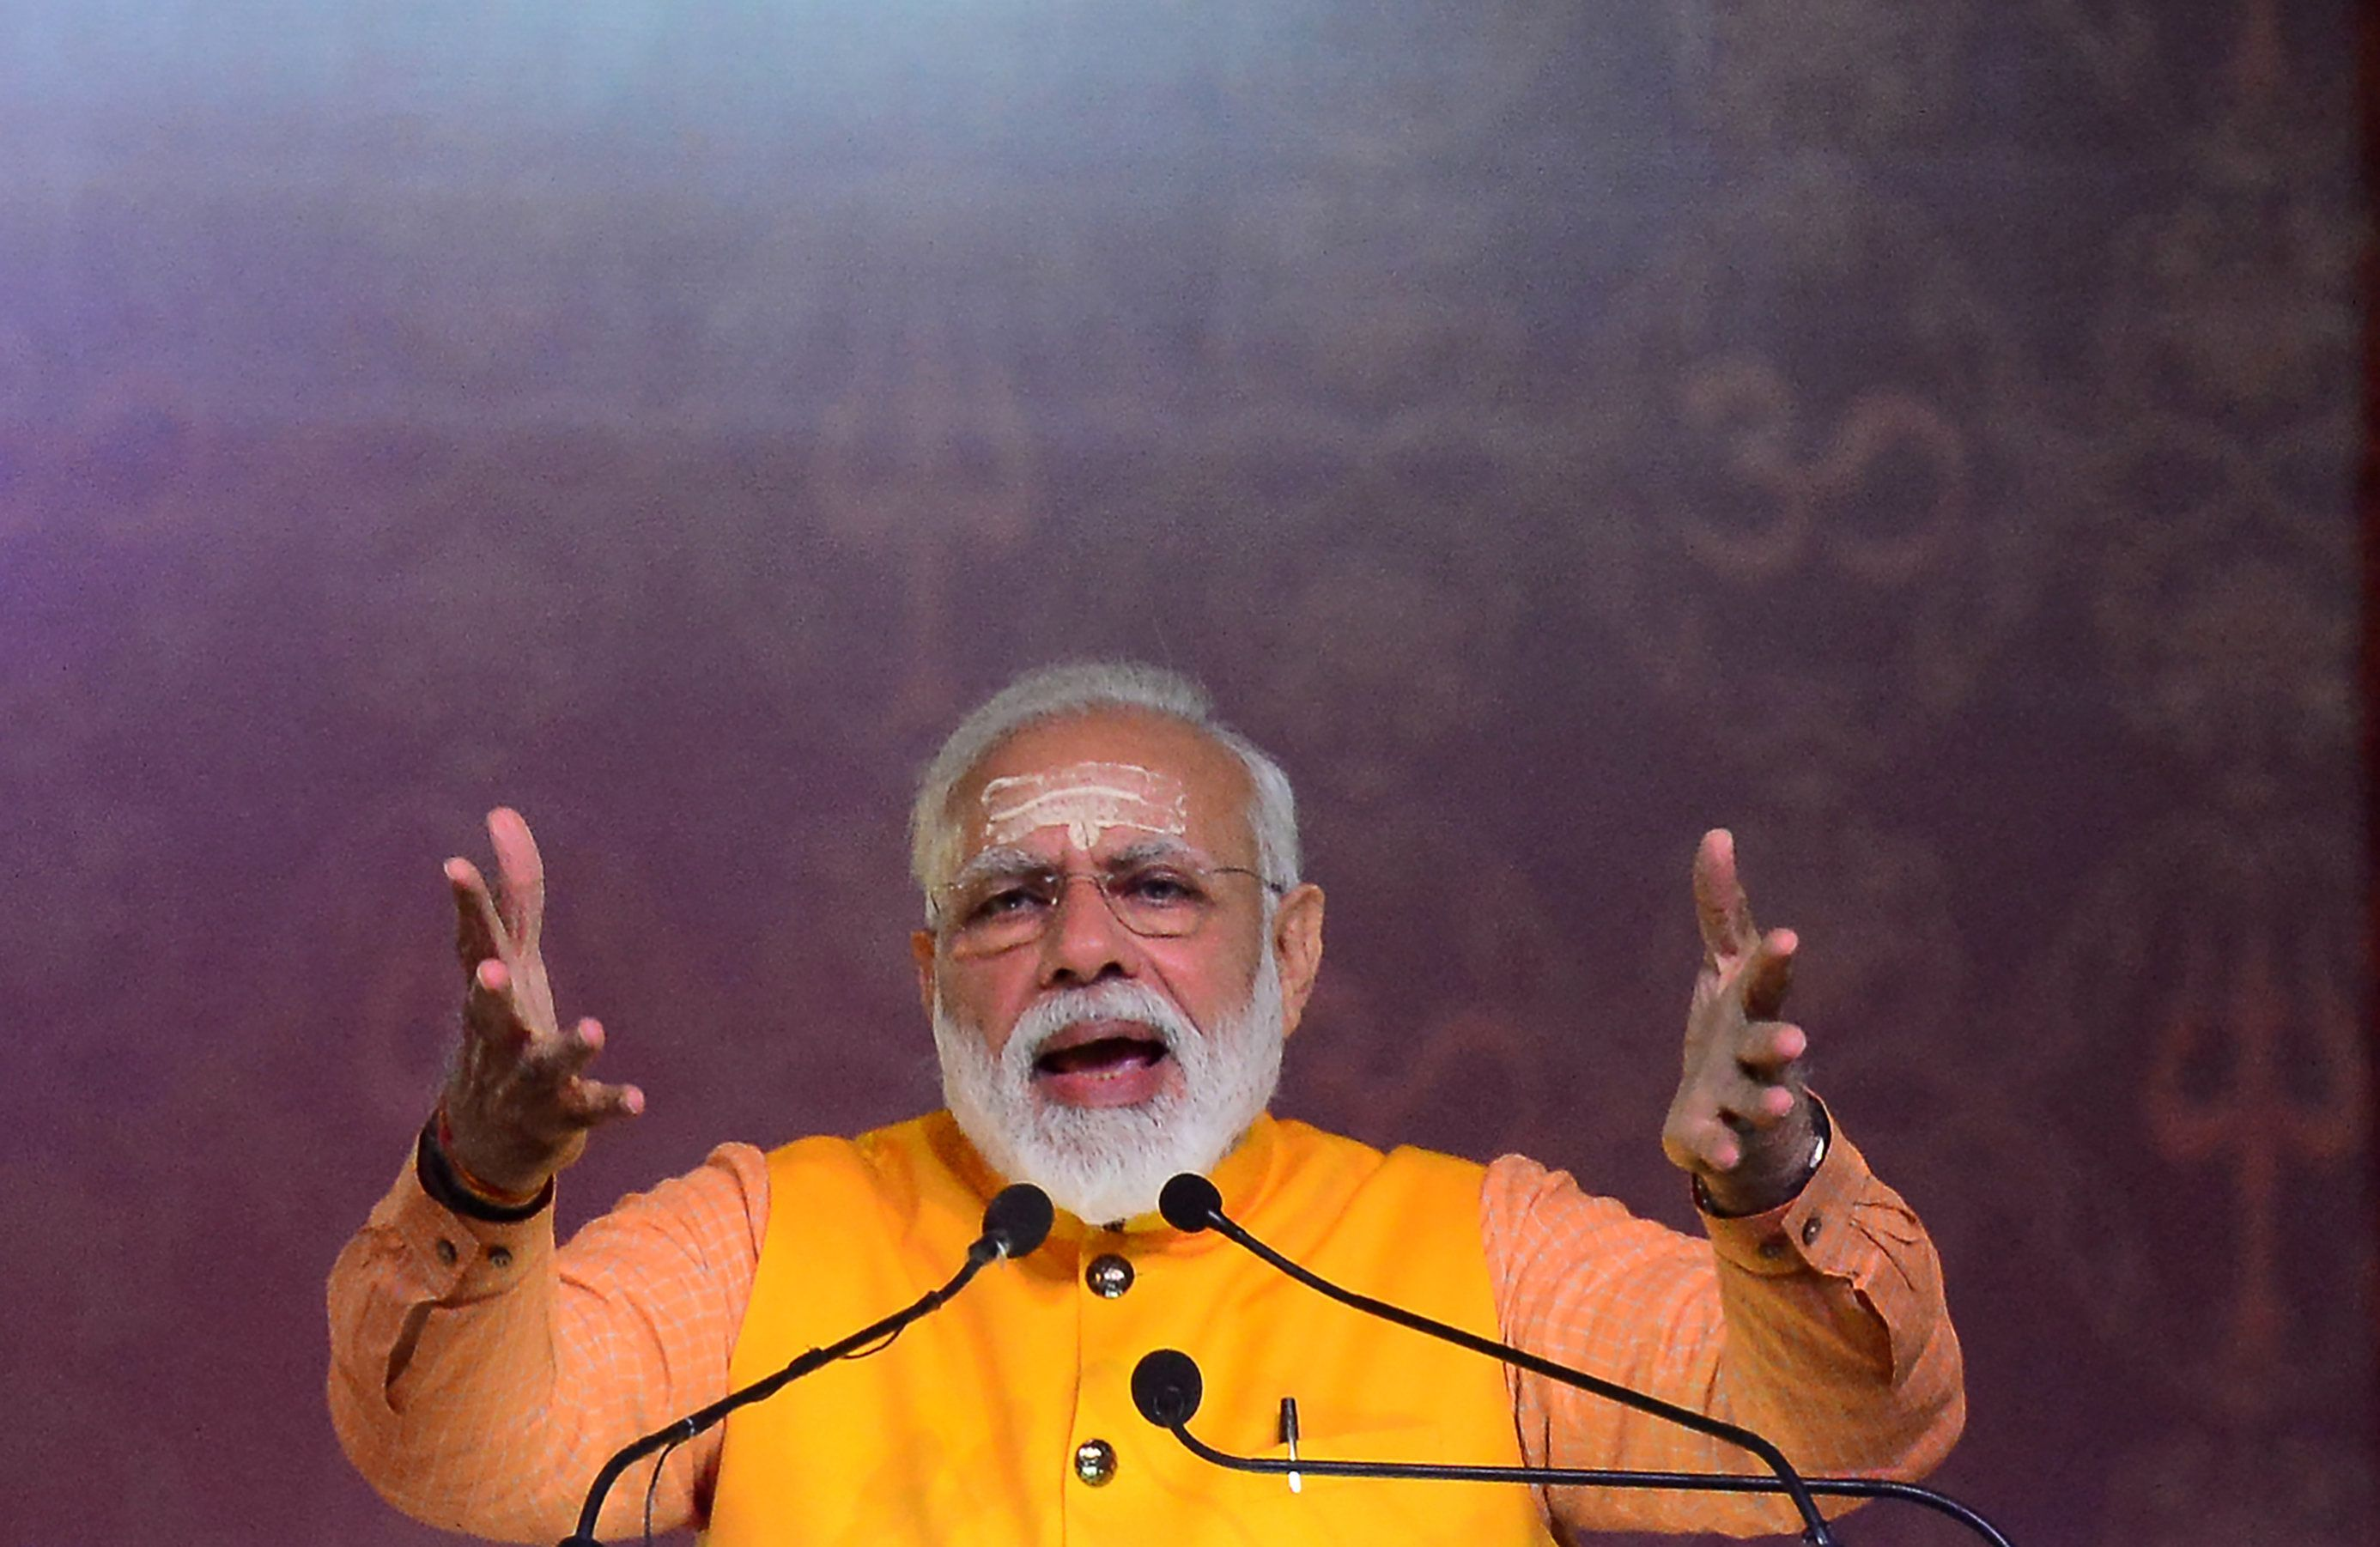 Balakot Strike May Help Increase Support For Modi Ahead Of Elections, Says